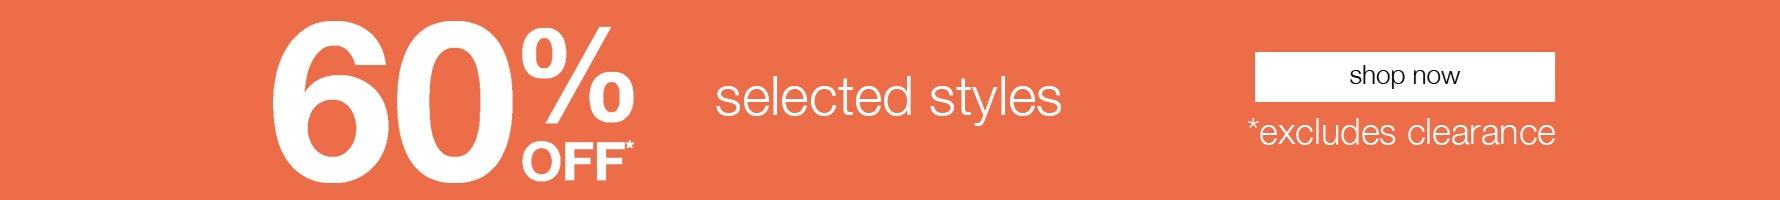 60% off selected styles